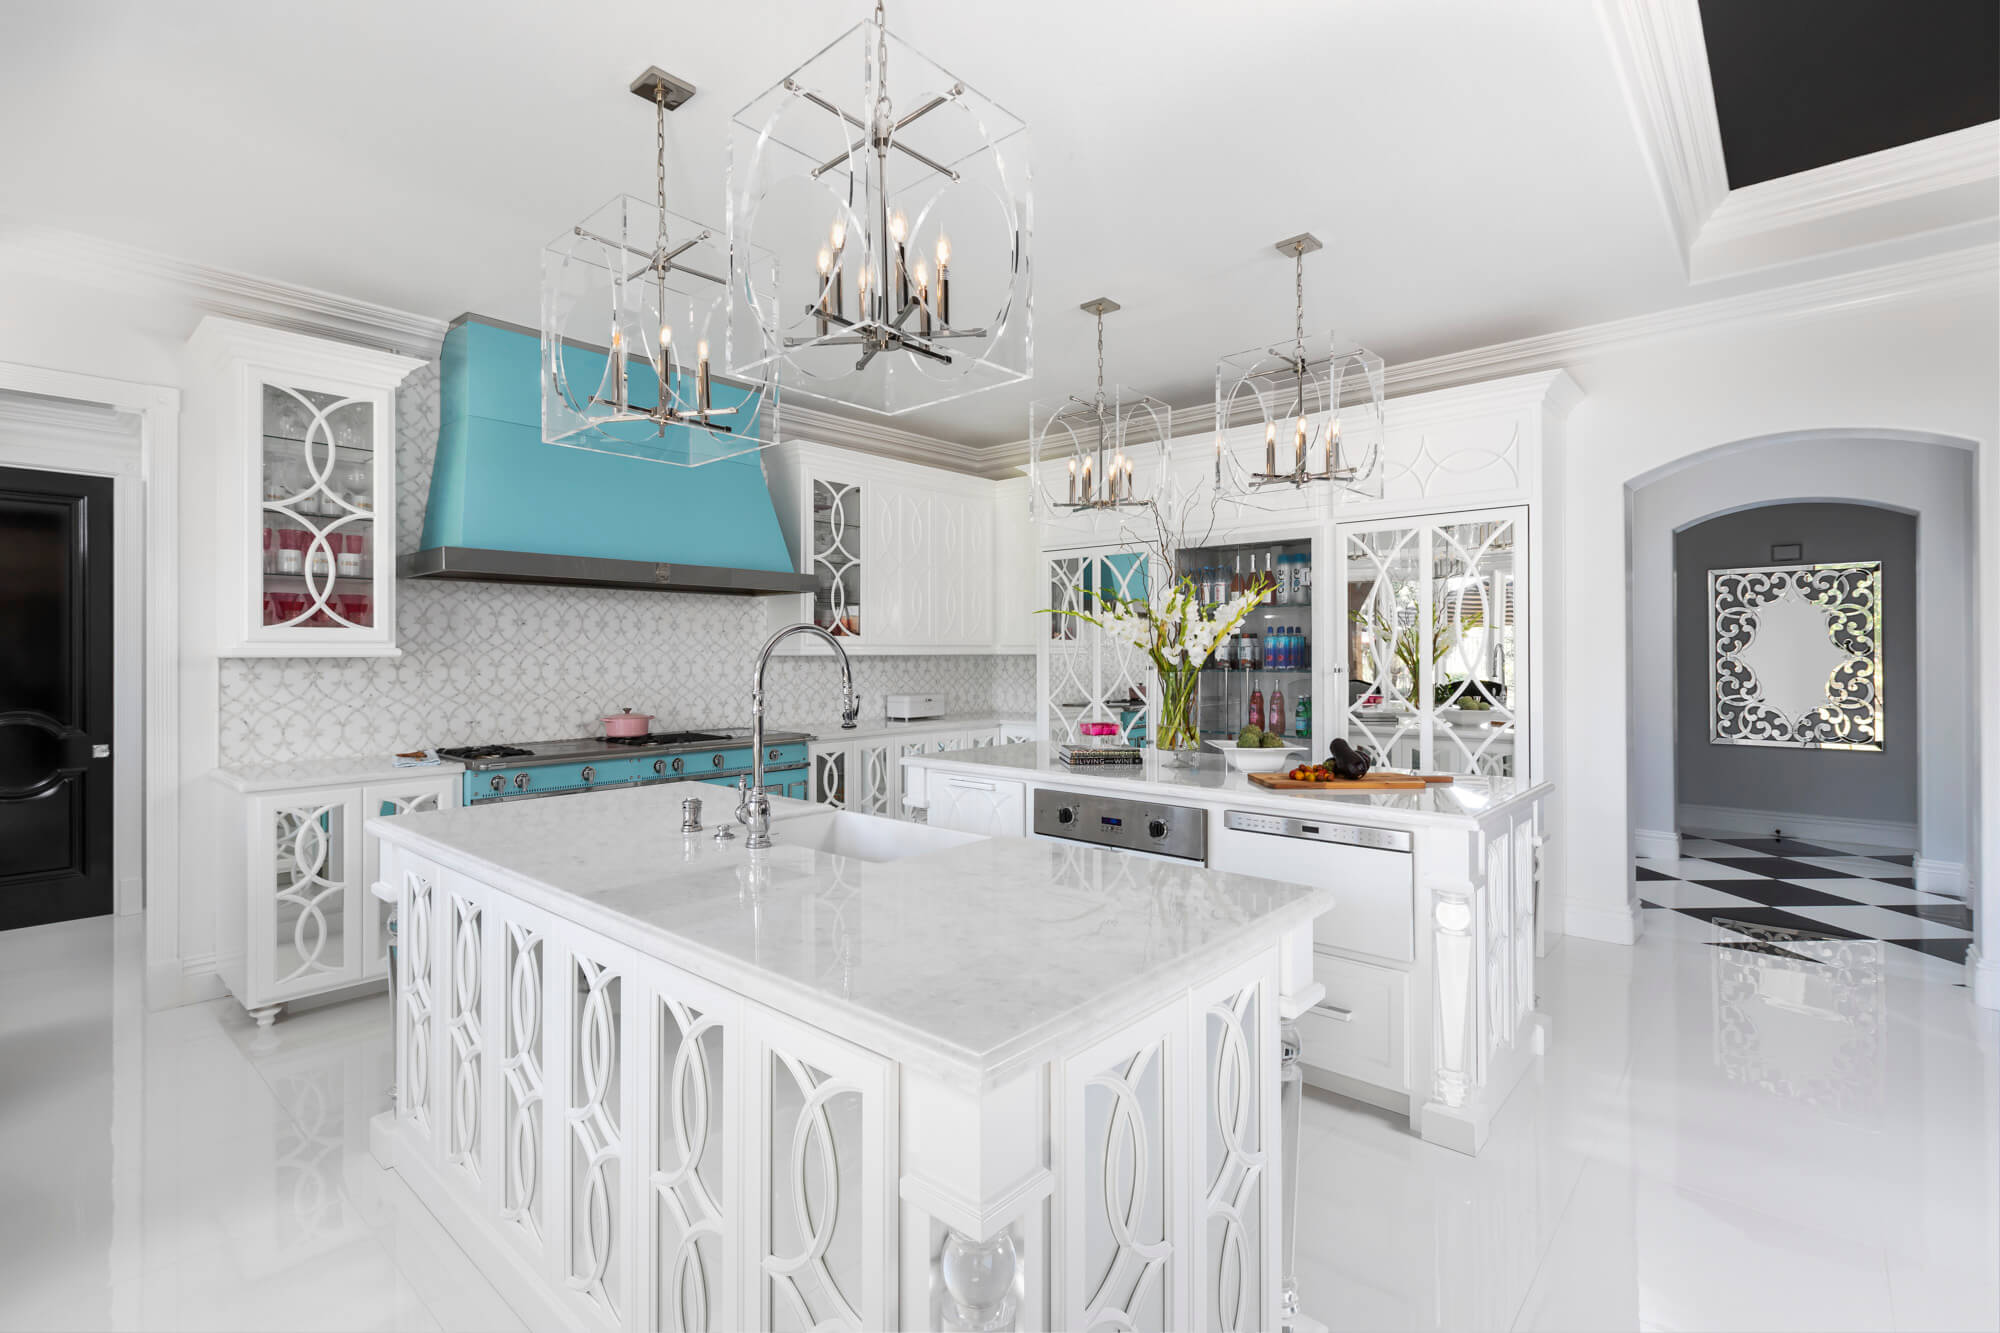 White kitchen with ornate cabinets